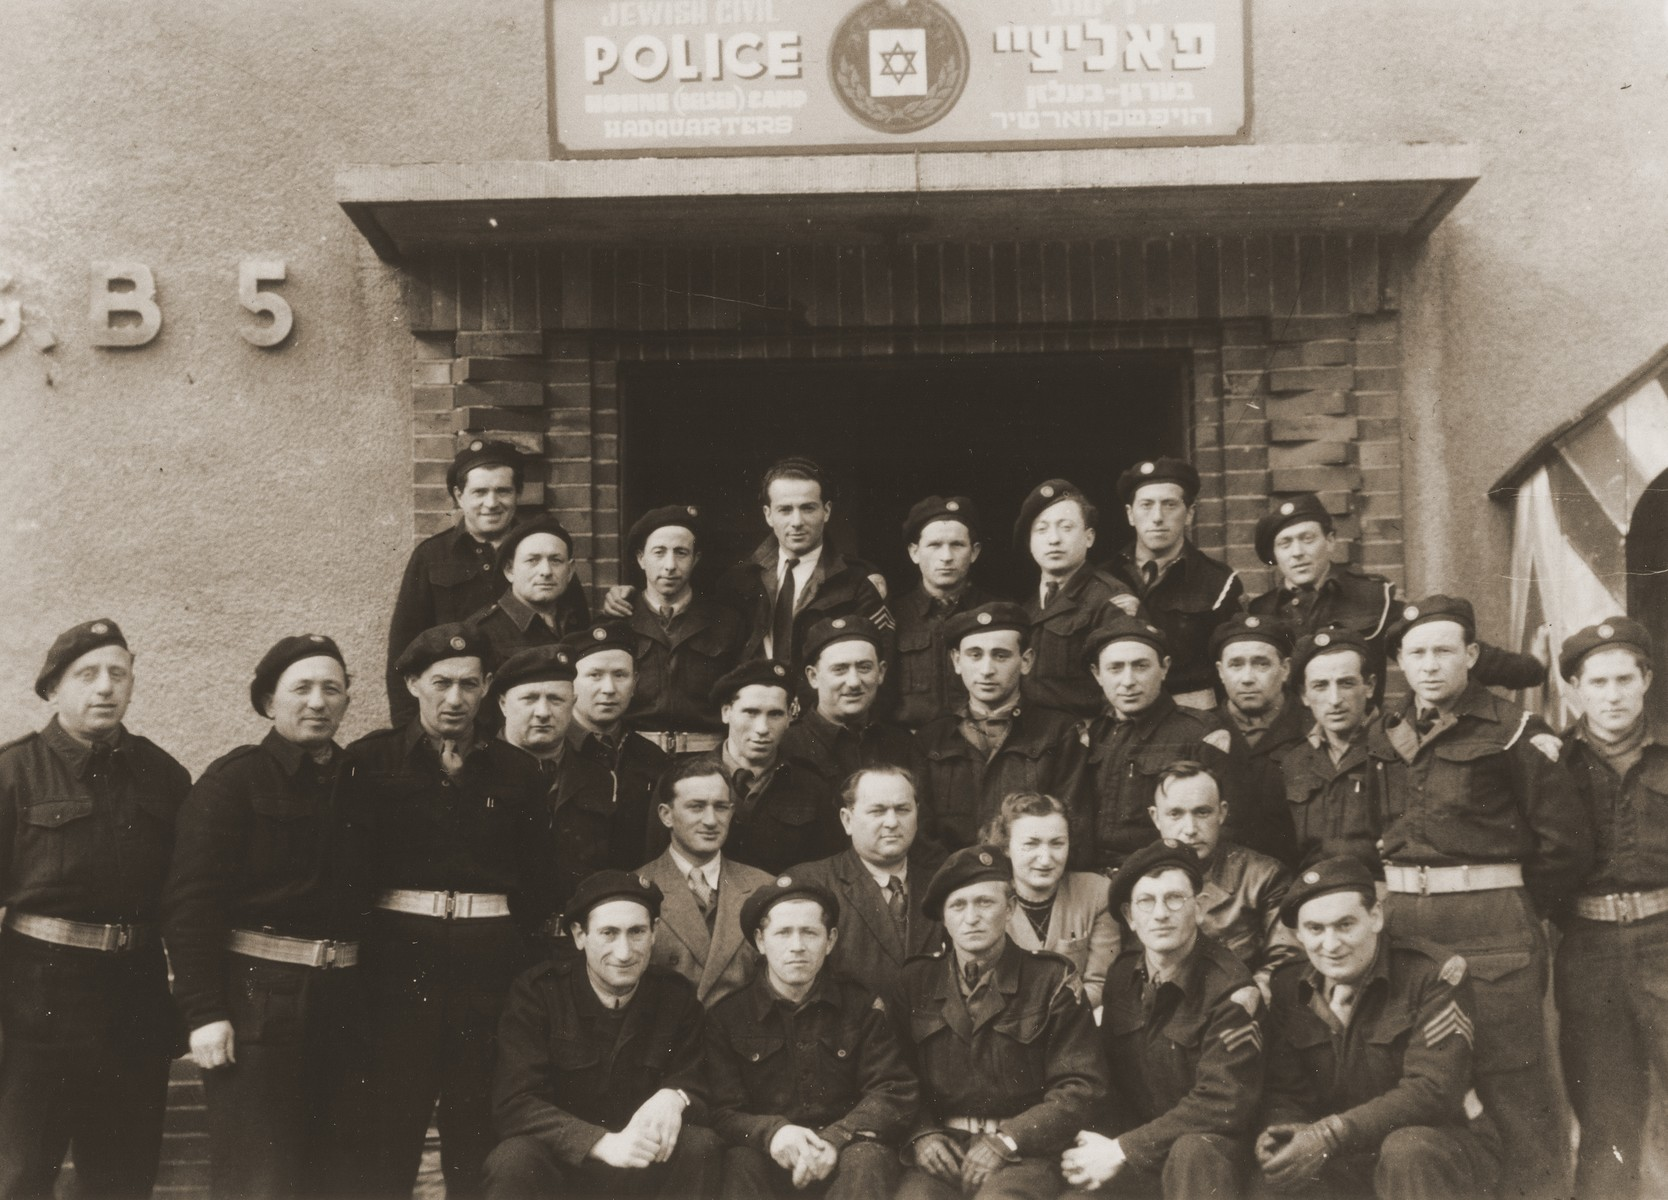 Group portrait of members of the Jewish police force in front of their headquarters at the Bergen-Belsen DP camp.  Those pictured include: second row: police chief Jaronowsky, secretary Hanka Altman.  Top row: third from left Moshe Stampfater, 4th from left Nandor Aron and 6th from left, Milehman.